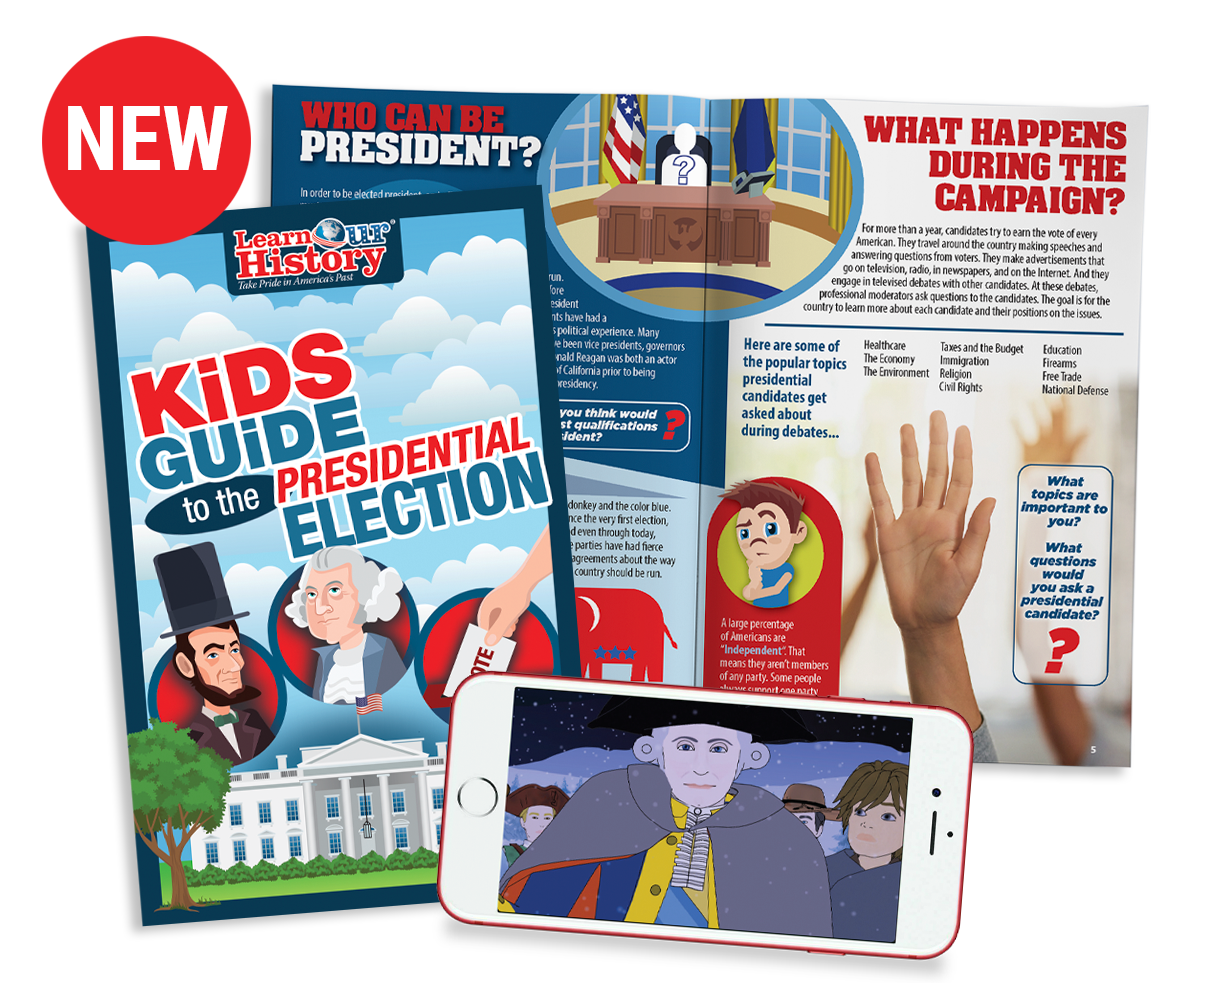 The Kids Guide to the Presidential Election